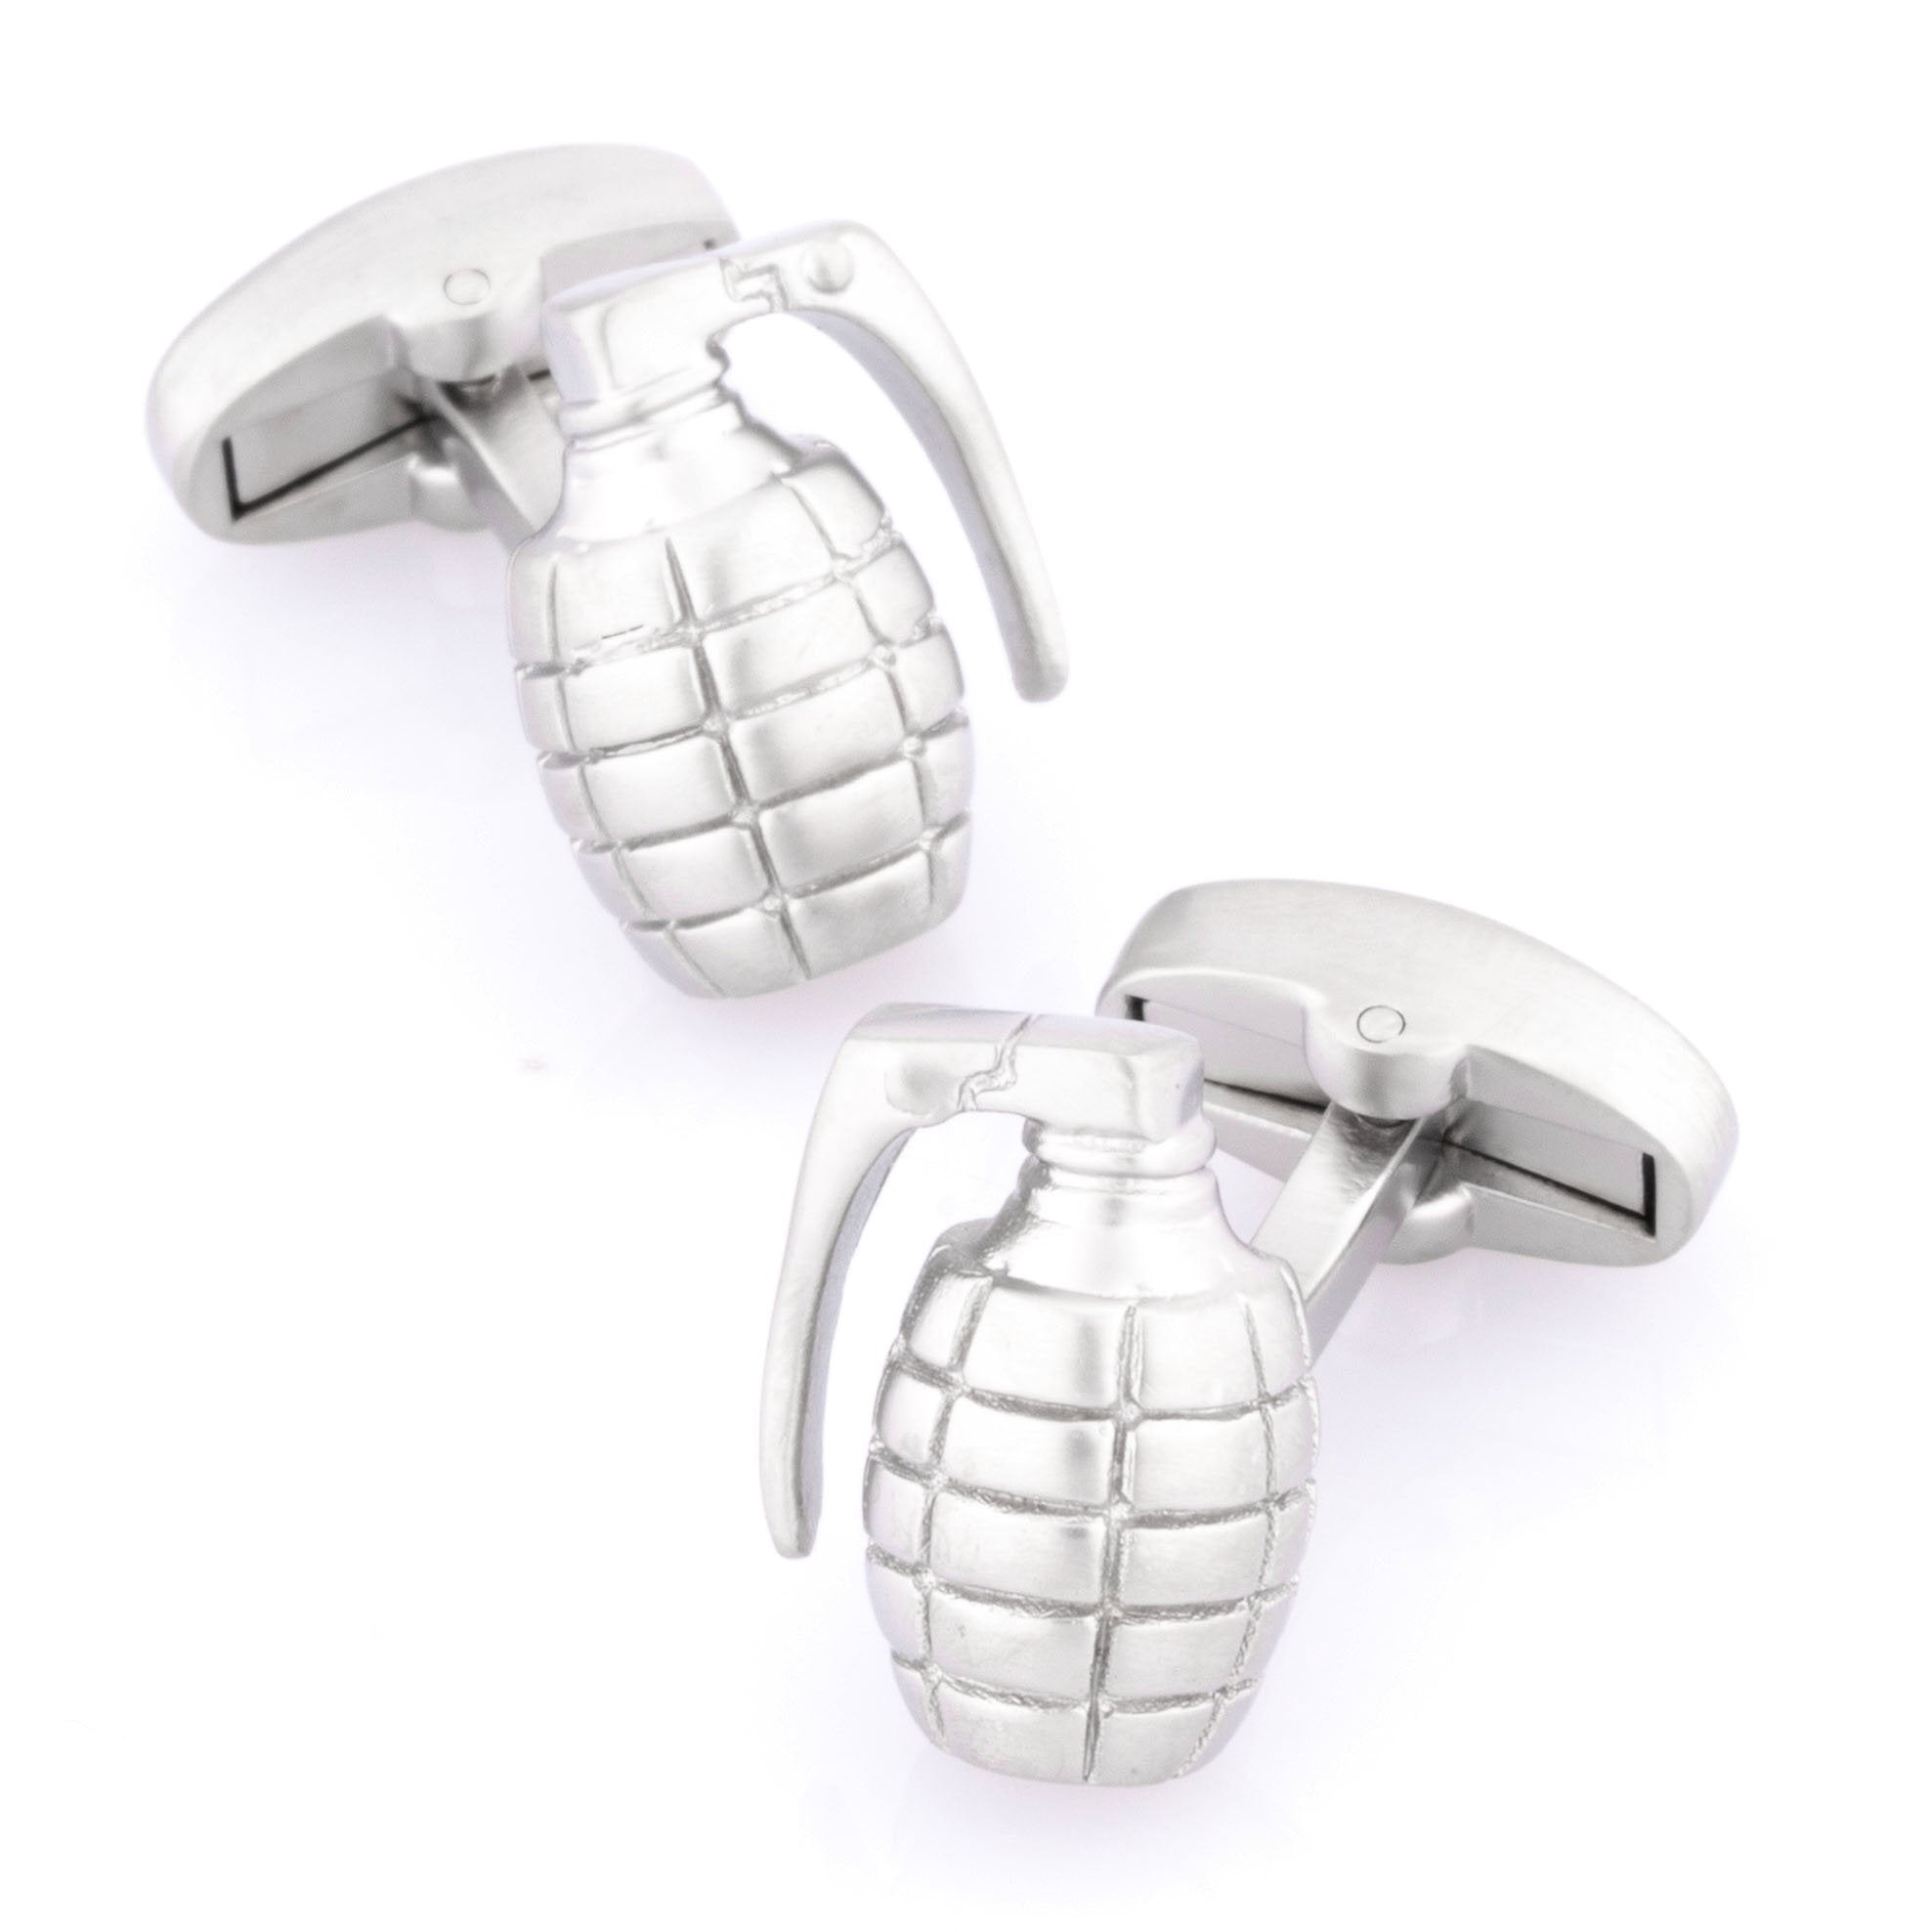 Grenade Silver Cufflinks, Novelty Cufflinks, Cuffed.com.au, CL9210, Career, Military, Military & Weaponry, Silver, Clinks Australia